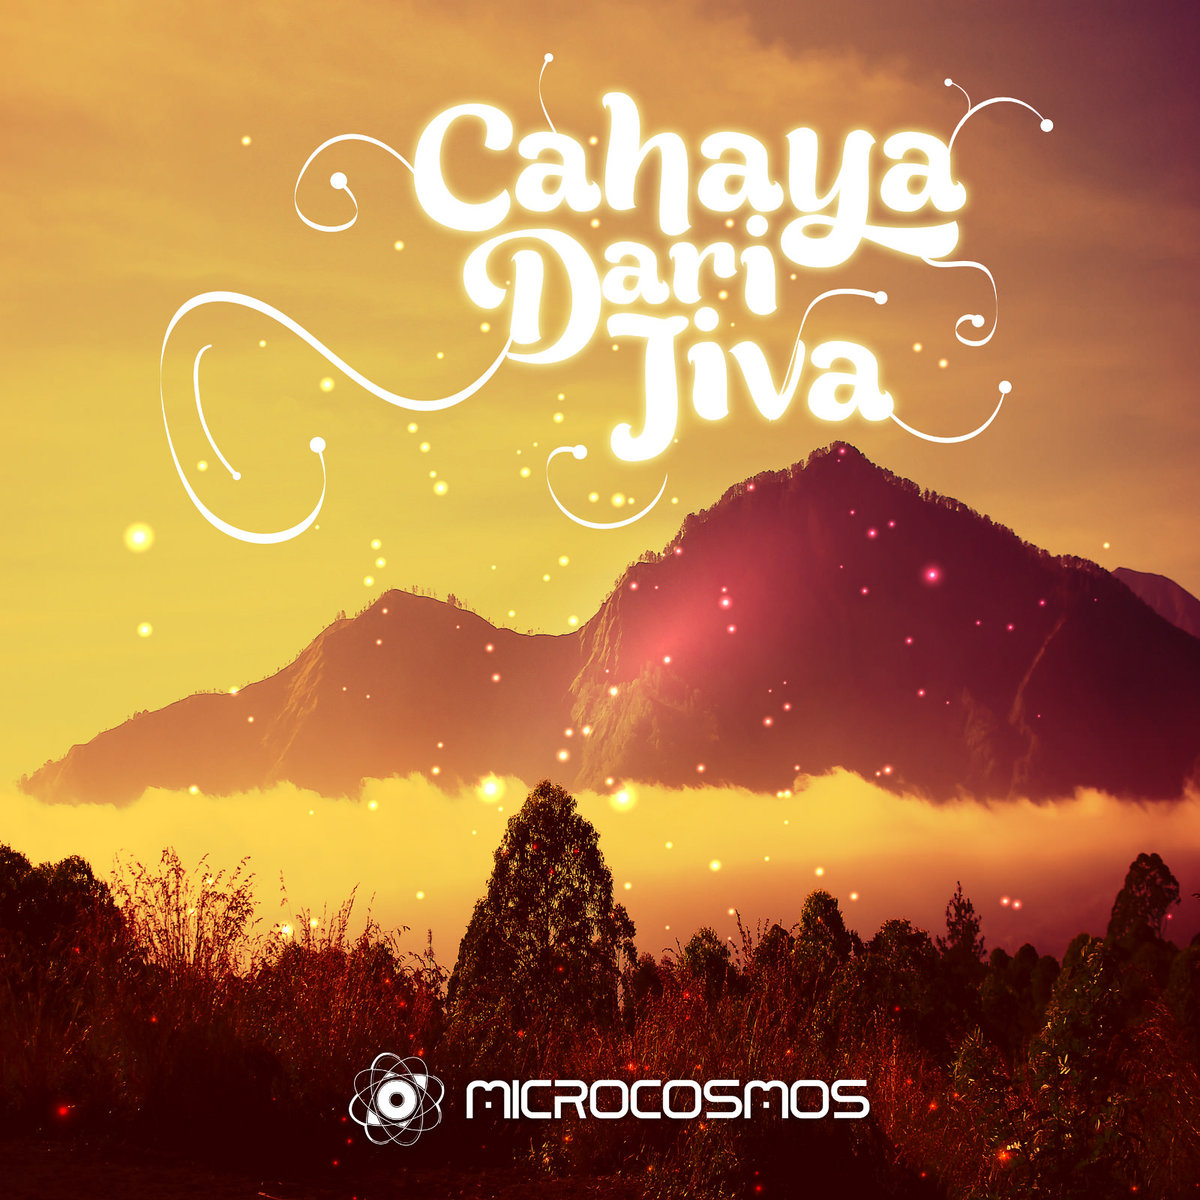 Dream Stalker - Under Moon @ 'Various Artists - Cahaya Dari Jiva' album (ambient, chill-out)